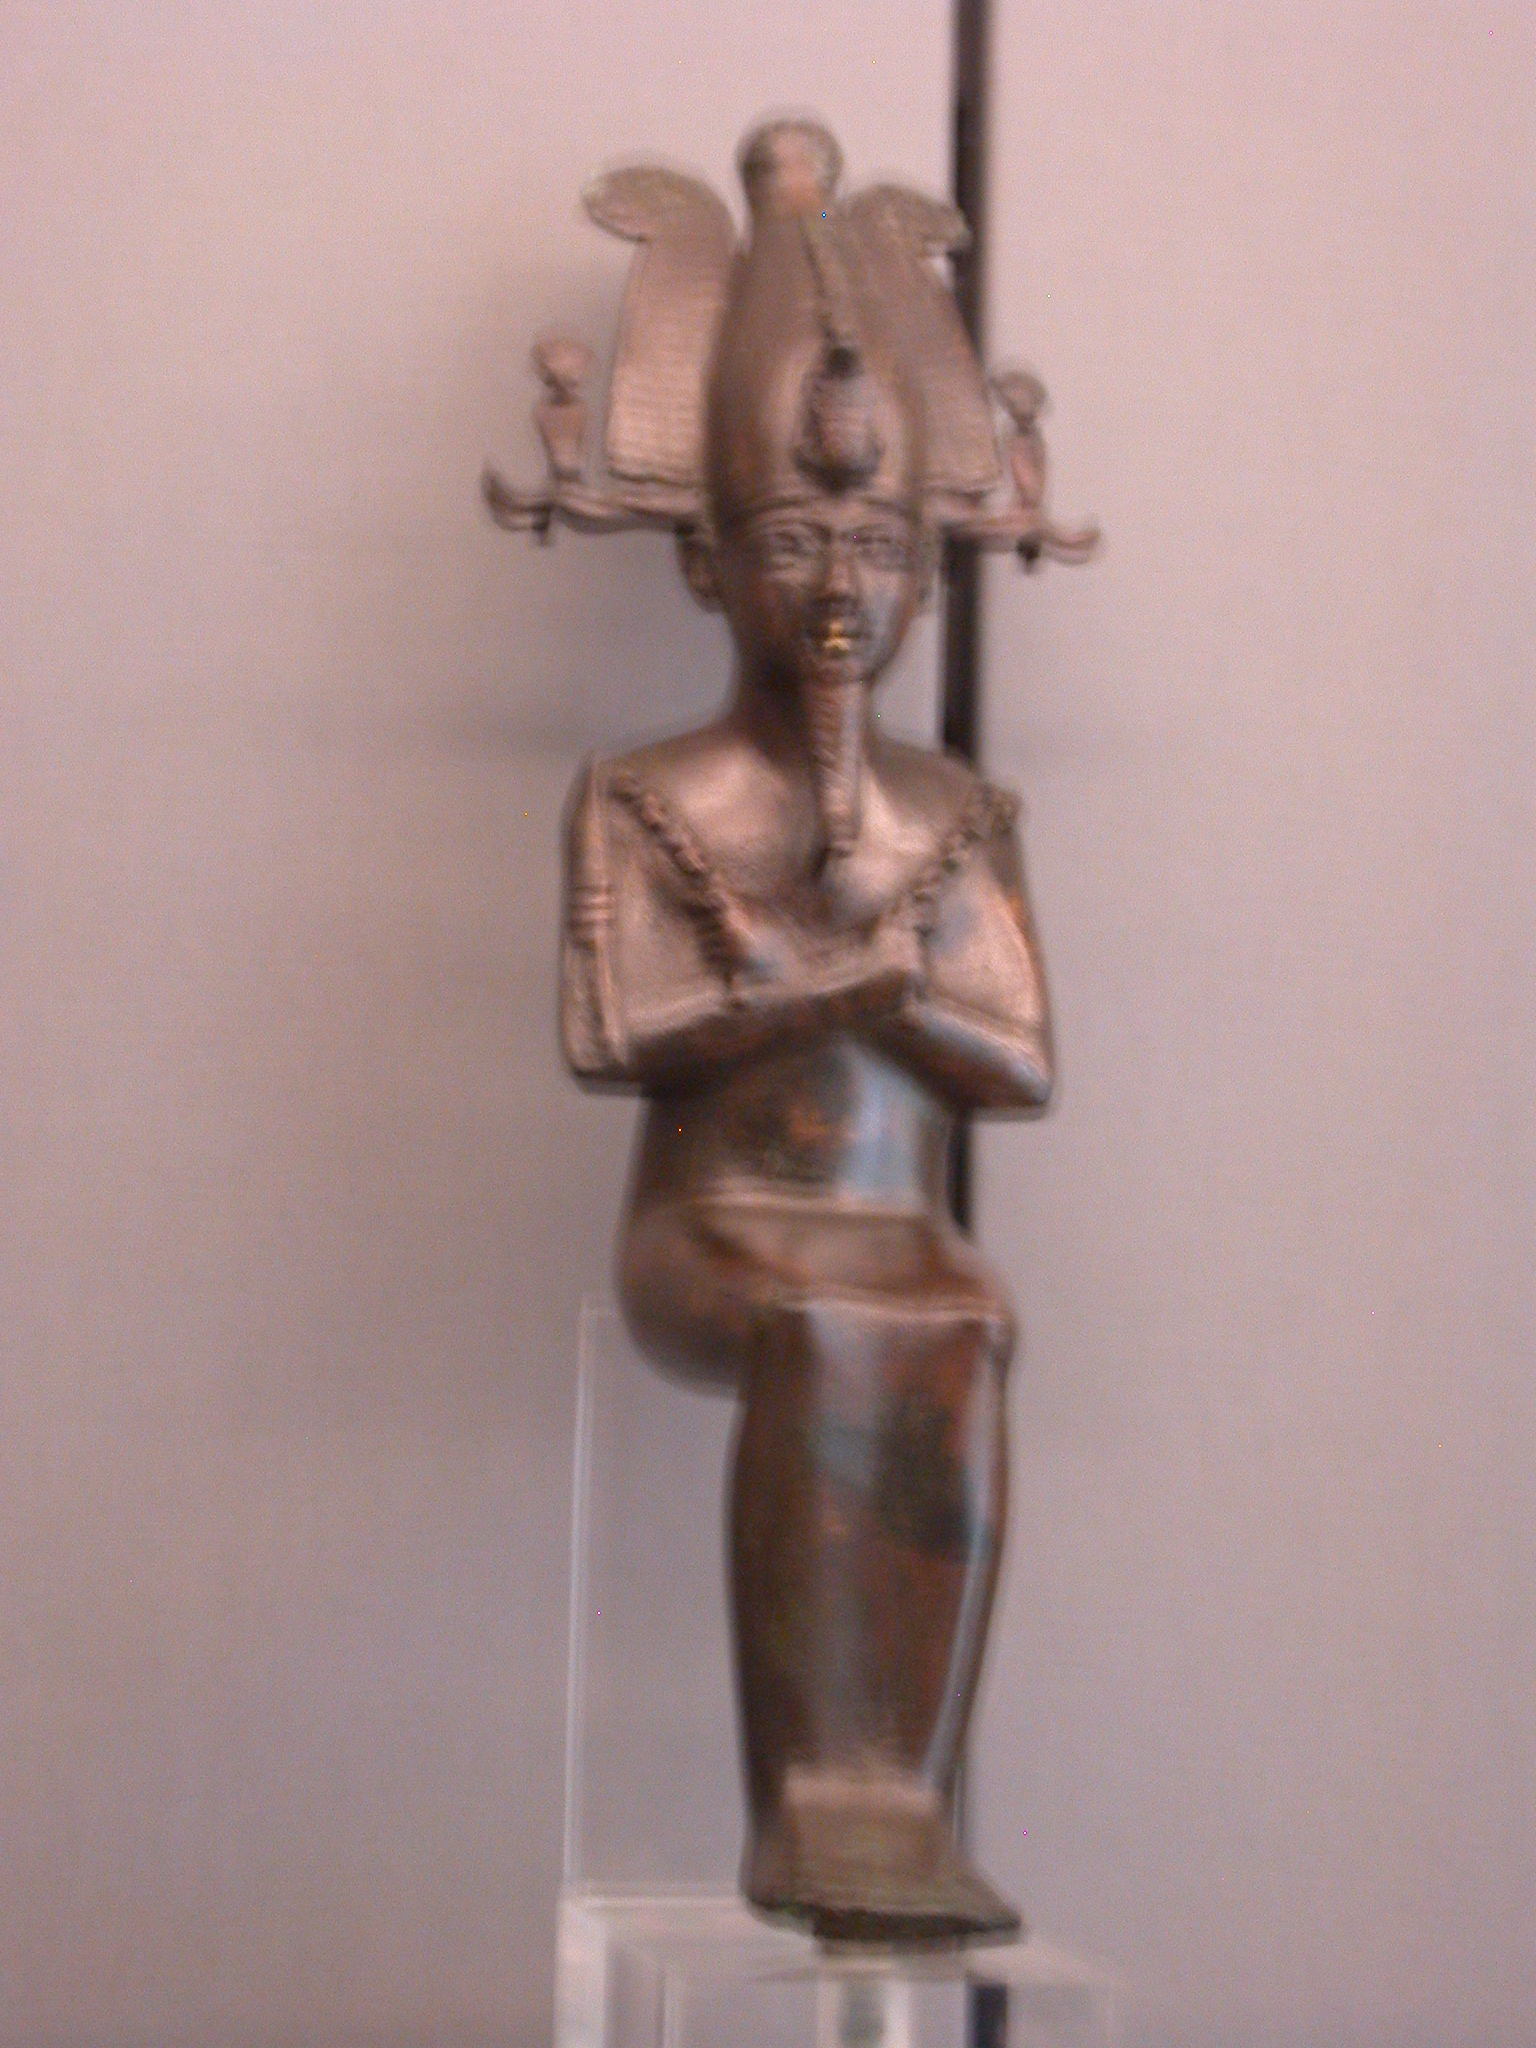 Osiris Figure, God of Underworld, Copper Alloy, Late Period, 746-336 BCE, Egypt, in Fitzwilliam Museum, Cambridge, England